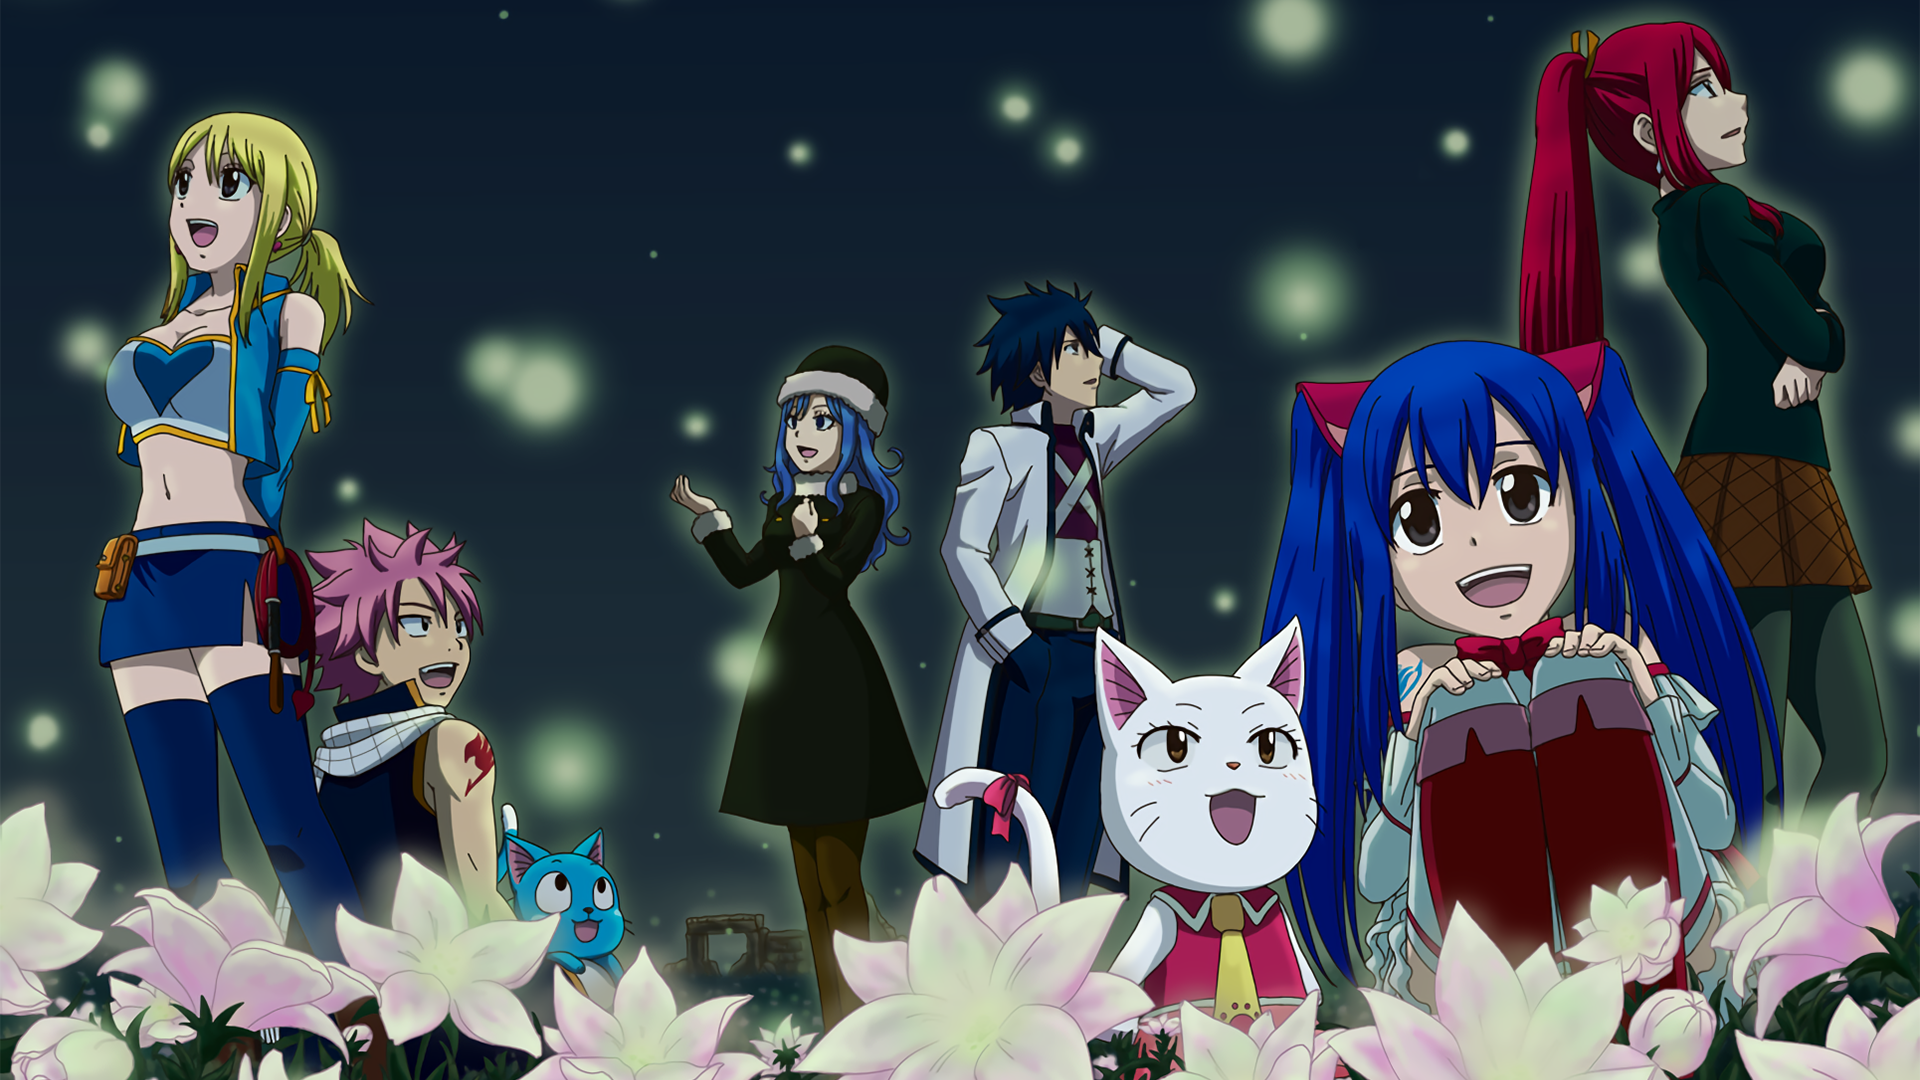 Fairy Tail HD Wallpaper   Background Image   1920x1080   ID:692547 - Wallpaper Abyss